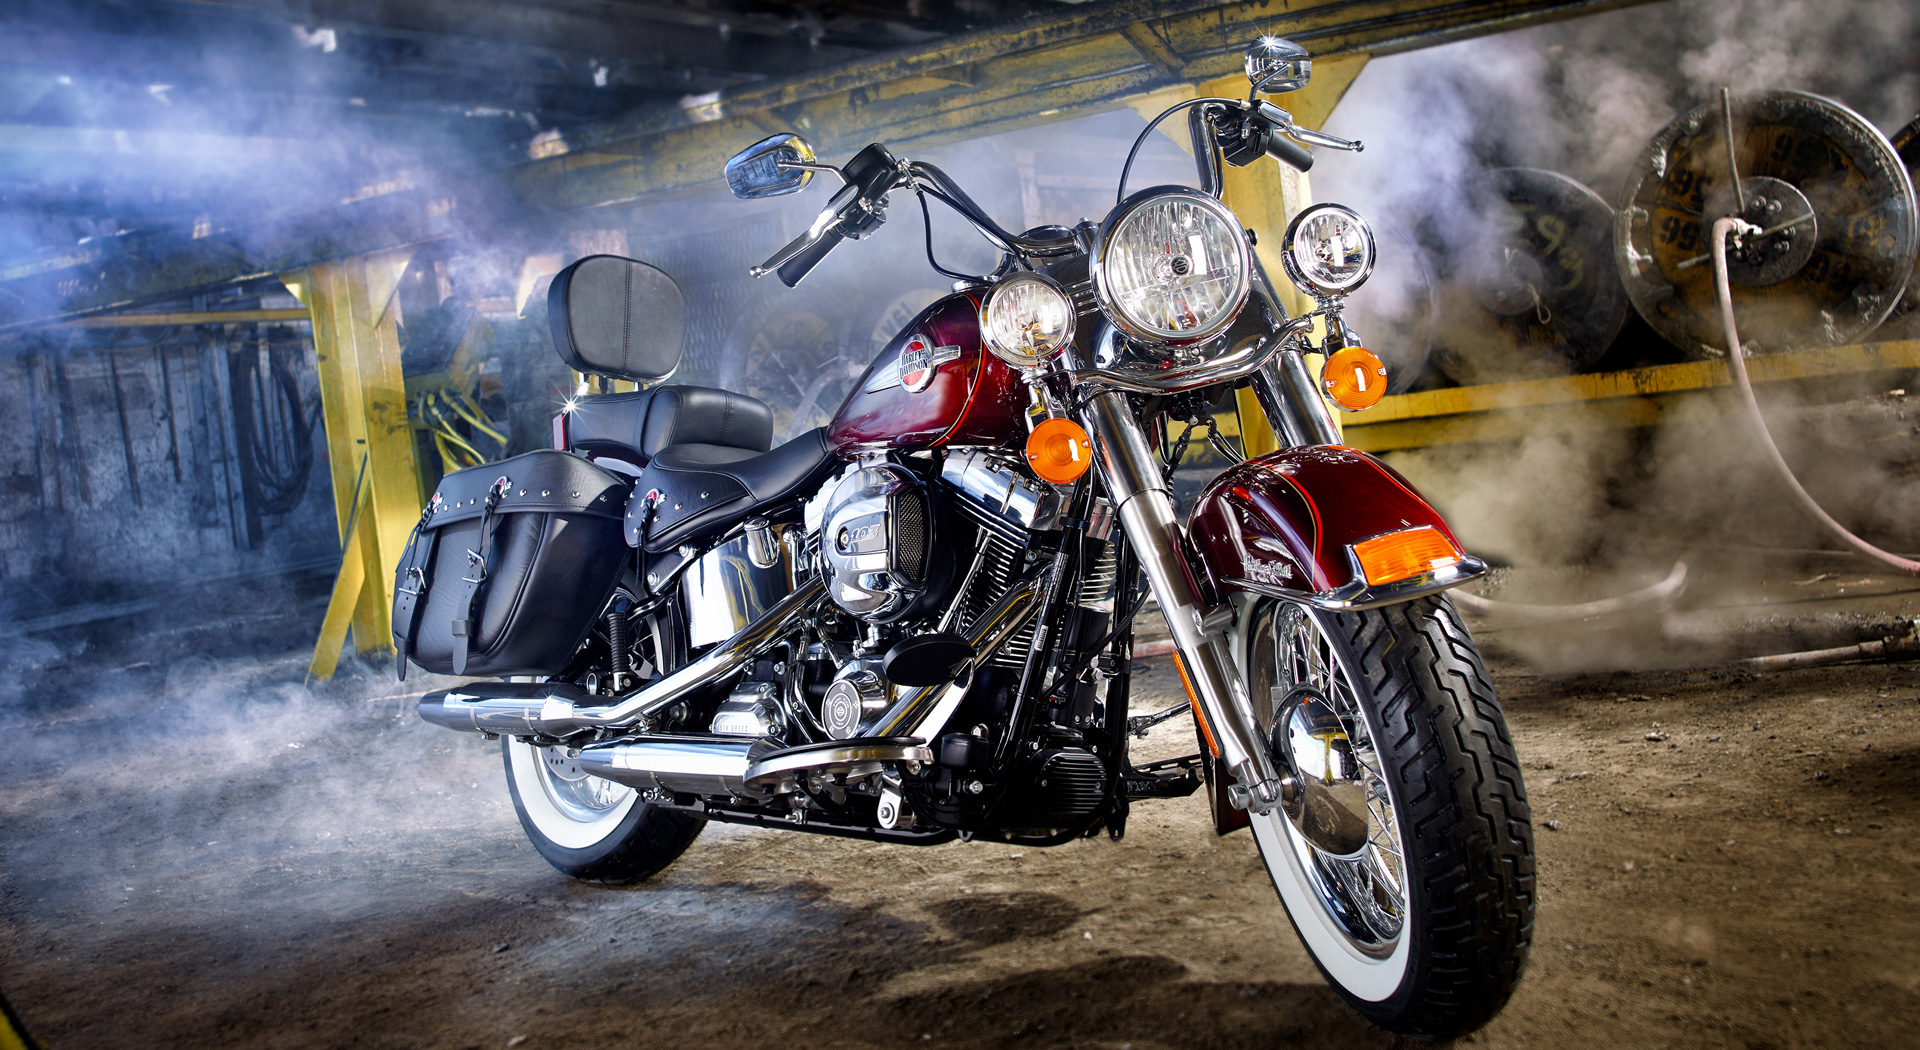 Motorcycle shot for Rotary Club